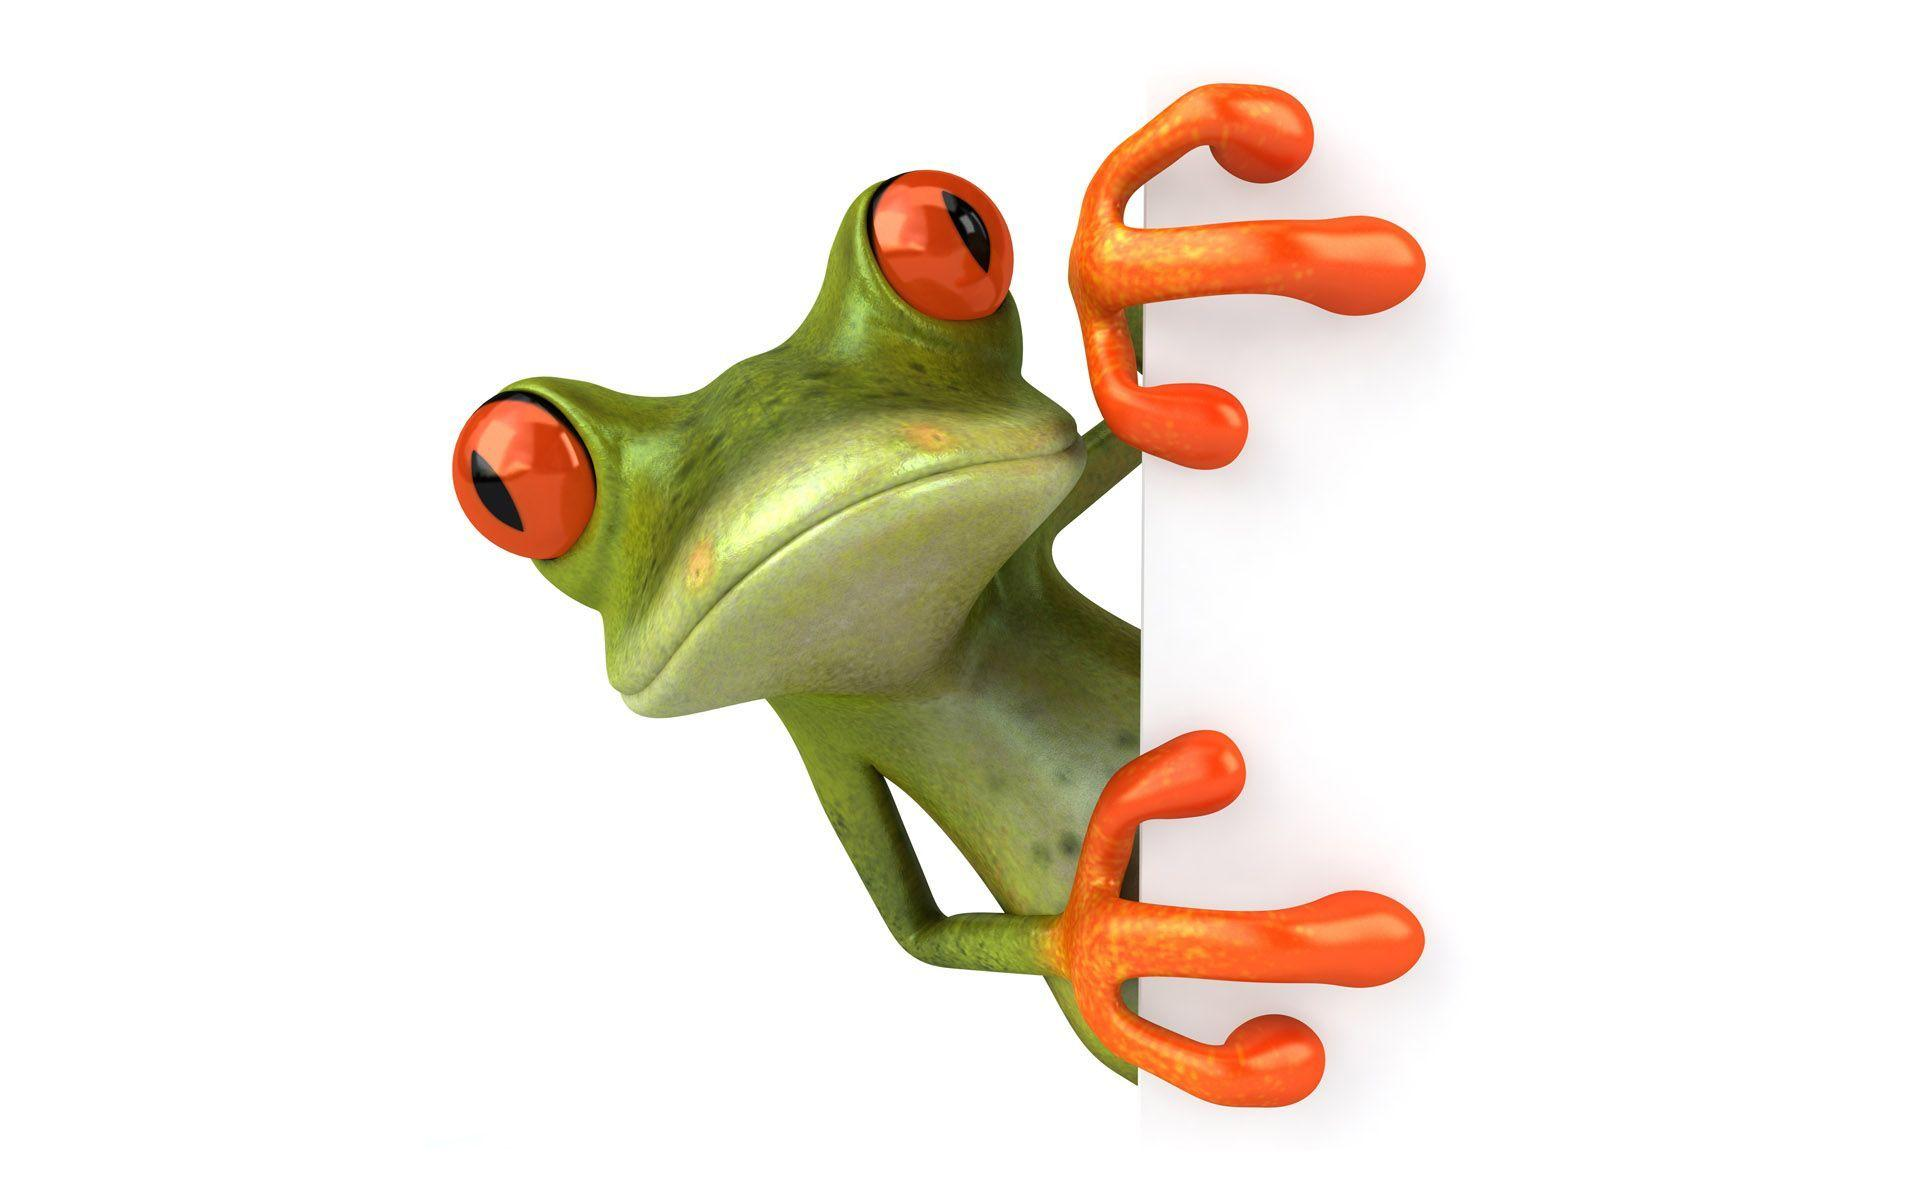 3d Wallpapers Wallpapers Cute Frog 1024x768 3d Wallpapers